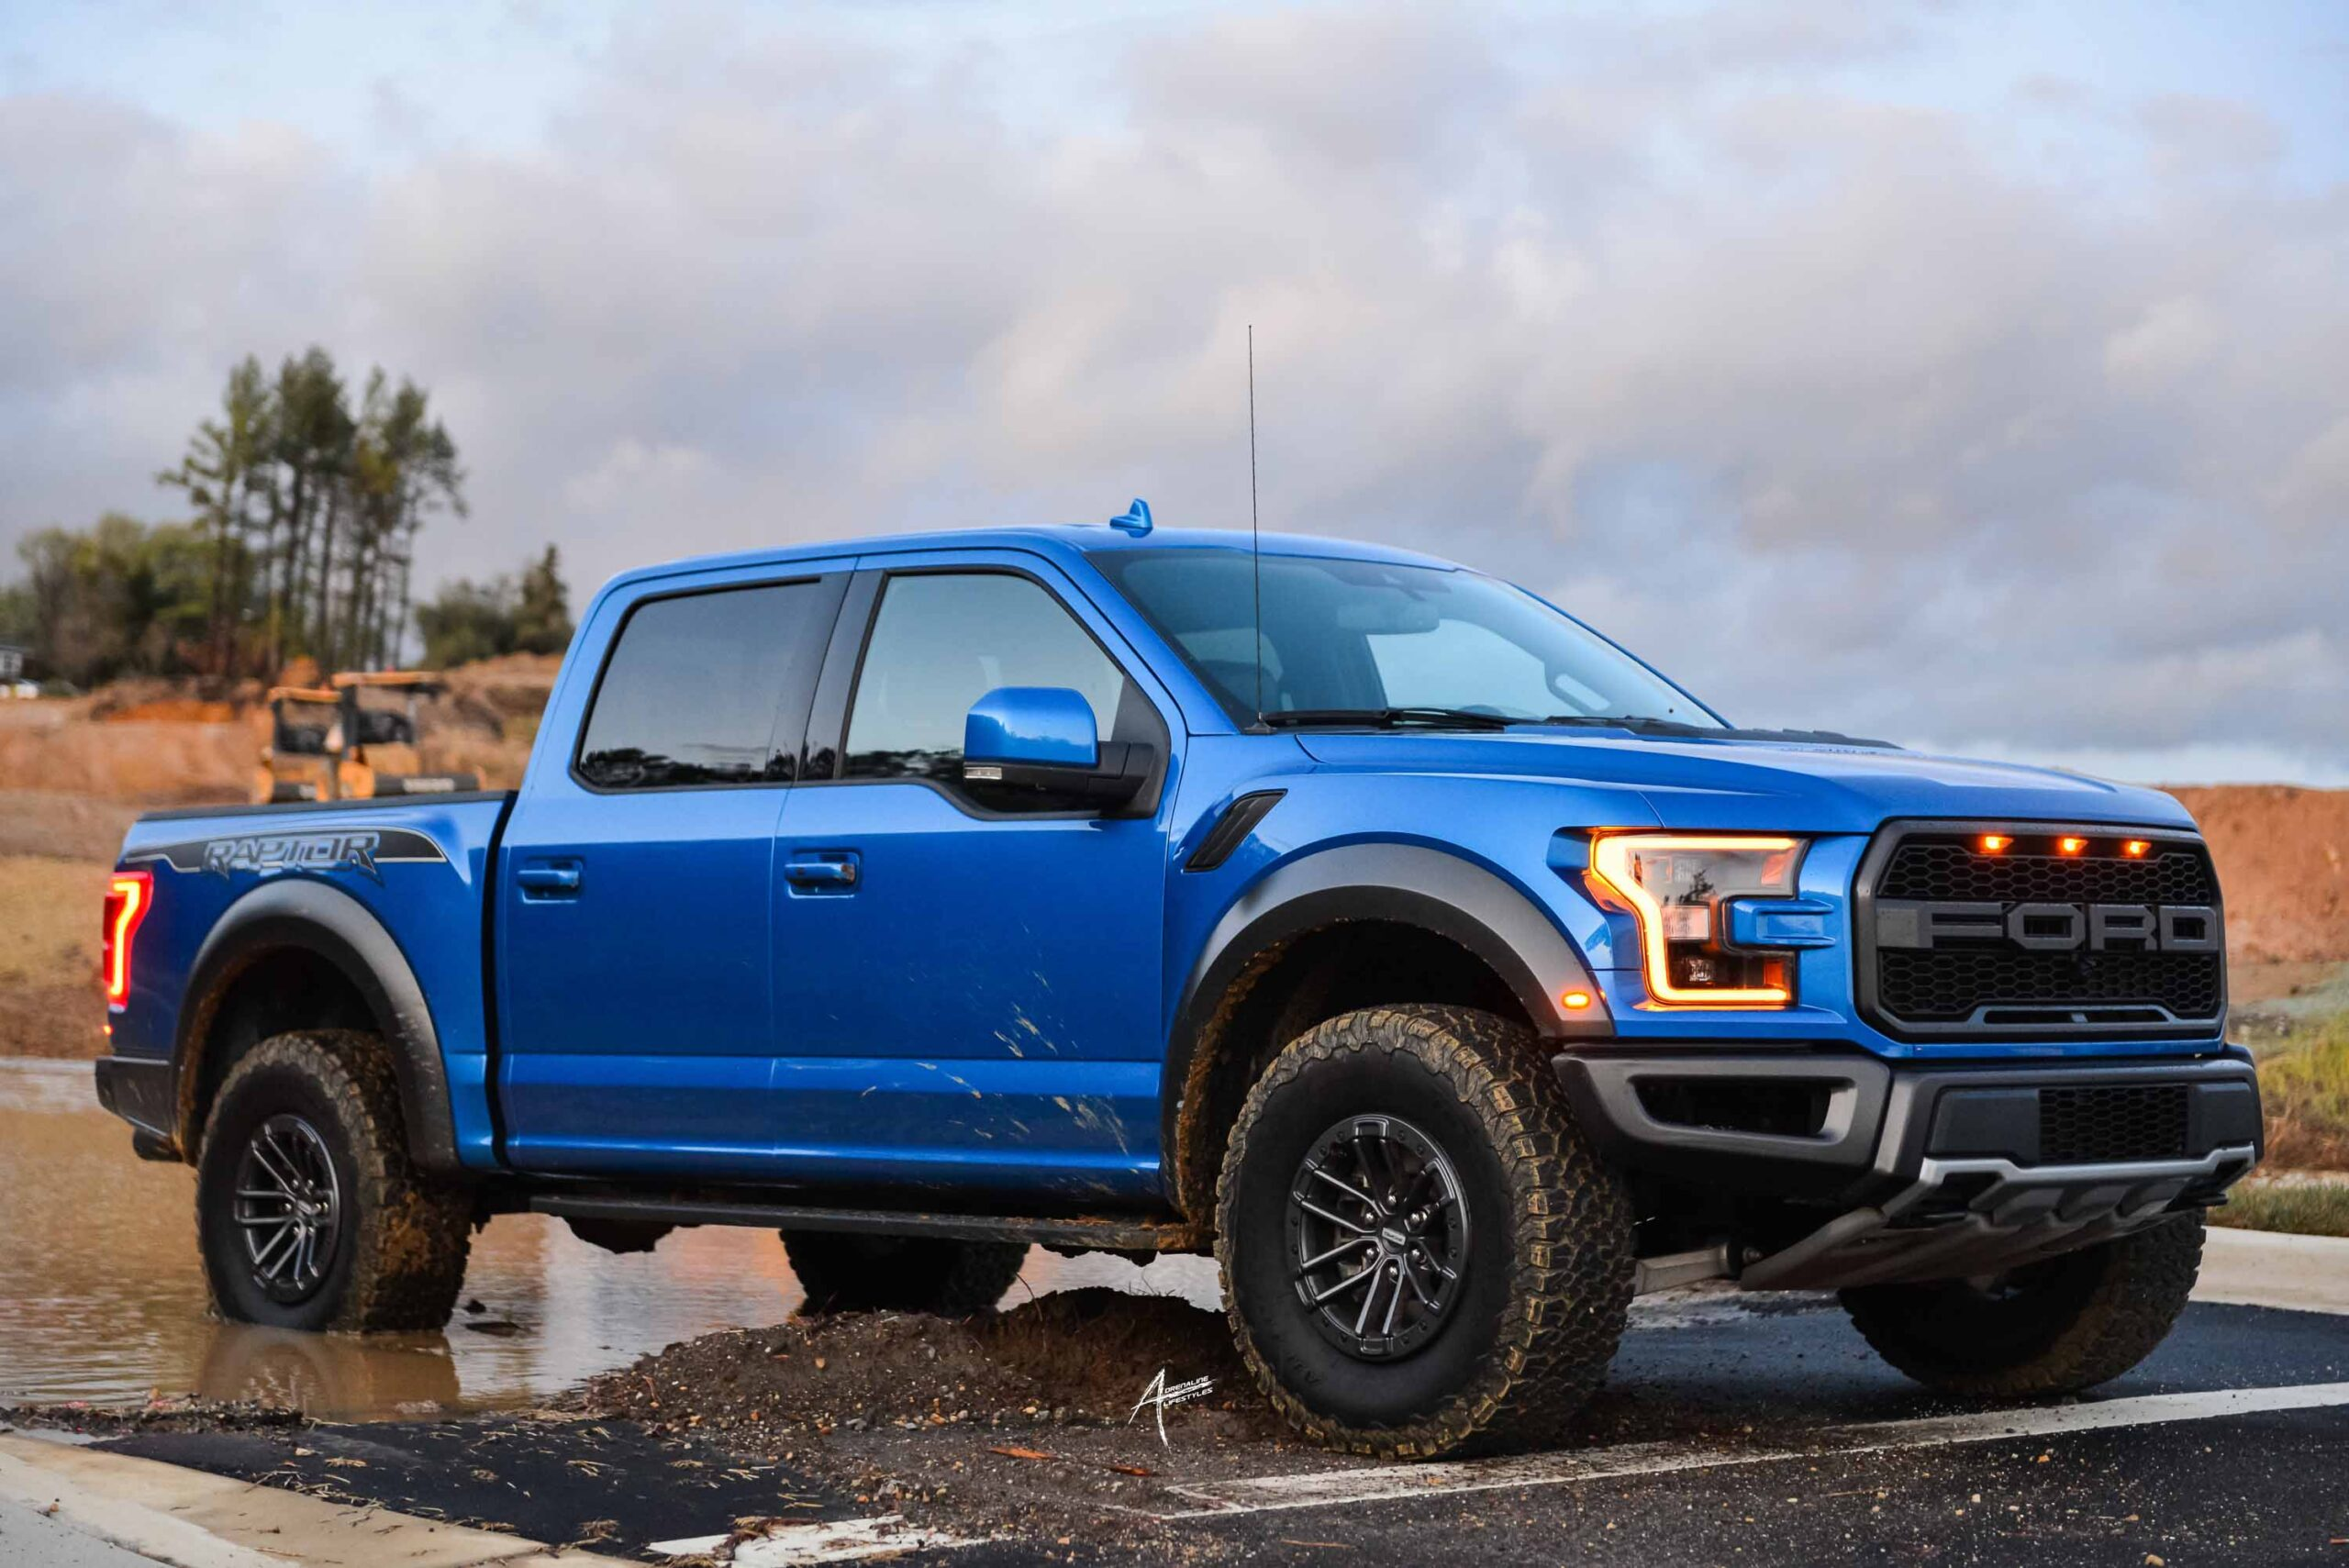 2019 Ford Raptor still reigns supreme as King - Adrenaline ...